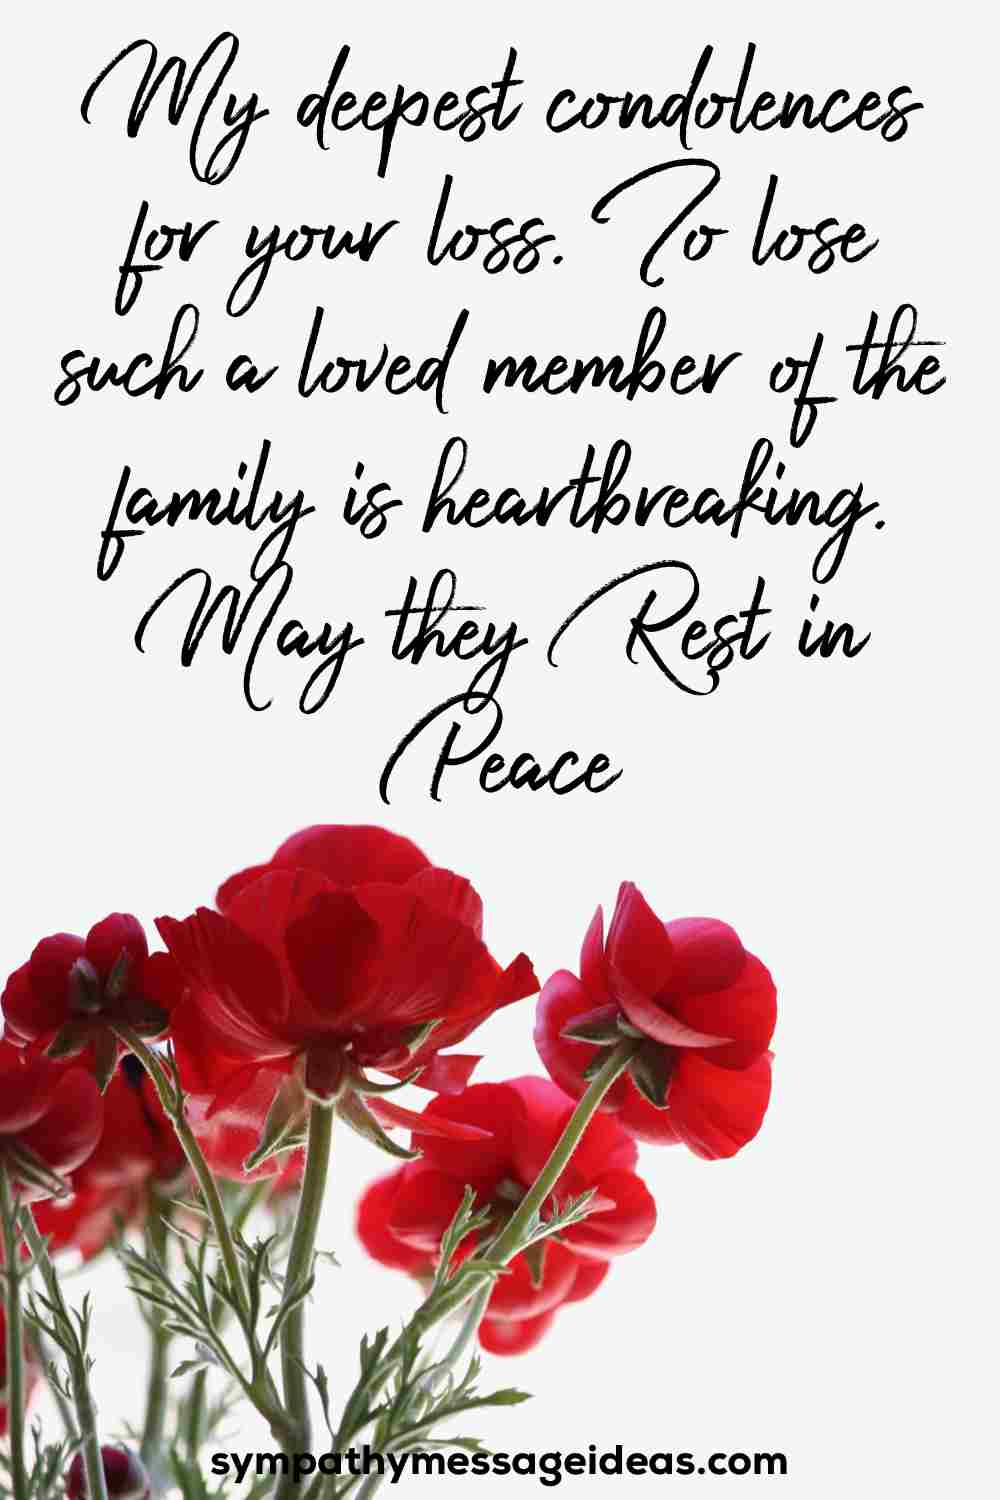 condolence message for loss of stepfather